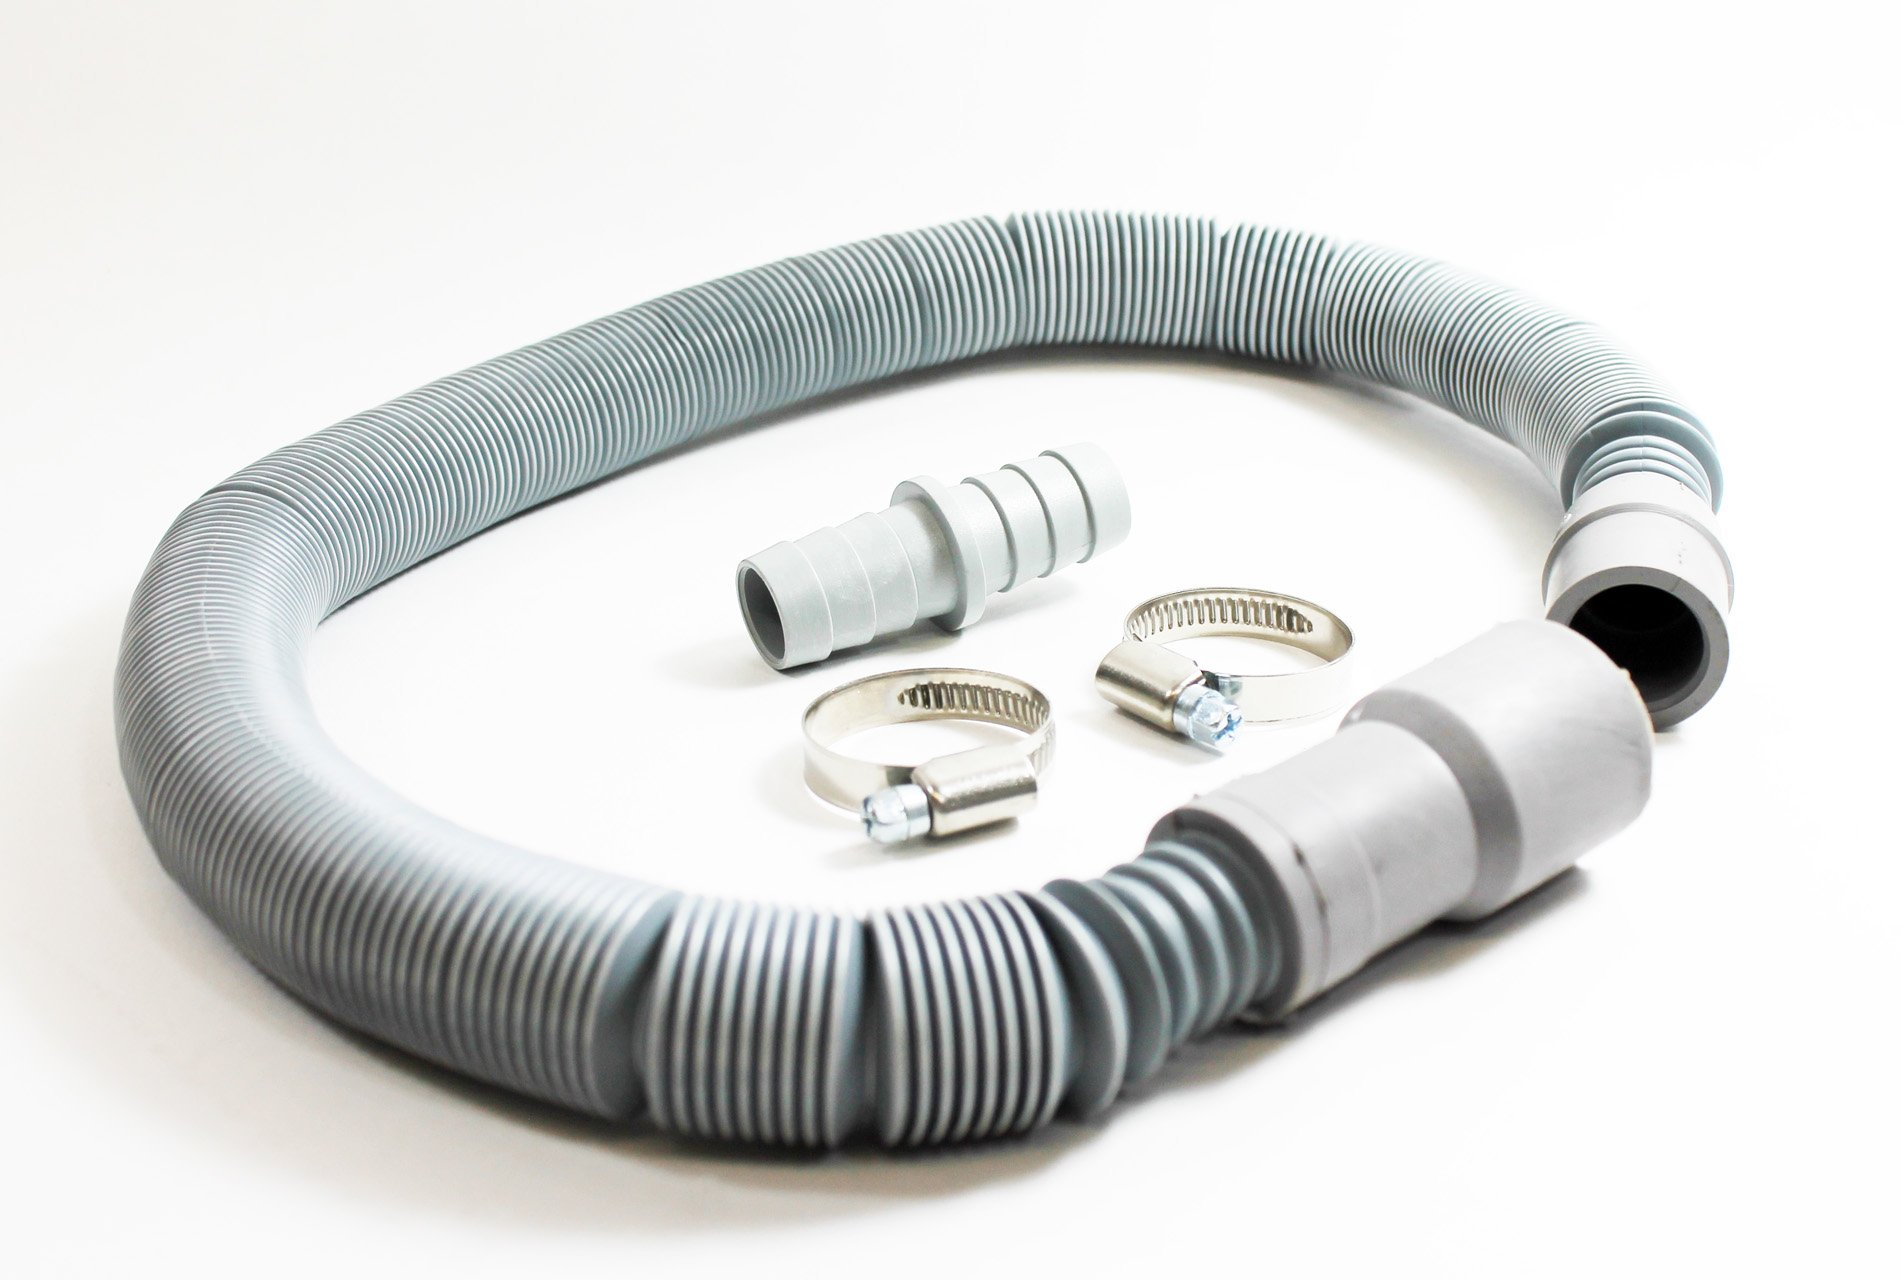 SPAREGETTI/® Stacking Kit To Fit HOTPOINT Washing Machines Stack any Standard Tumble Dryer Safely and With Confidence To Your HOTPOINT Appliance